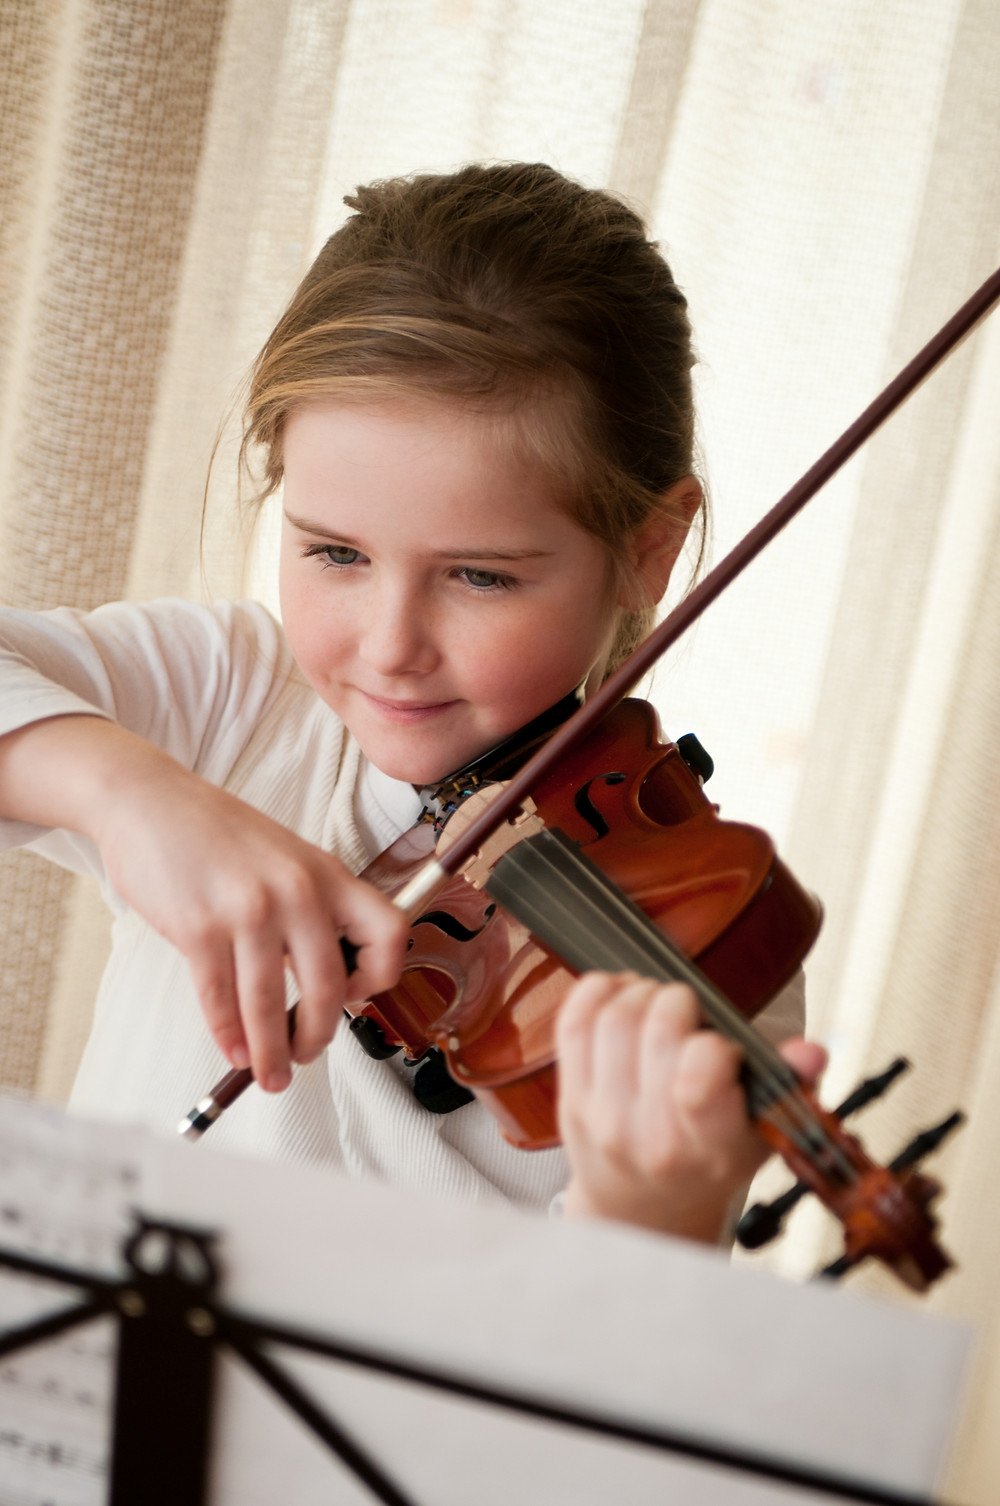 Young child plays violin with music at music lesson at Upper Beaches Music School in East Toronto on Danforth